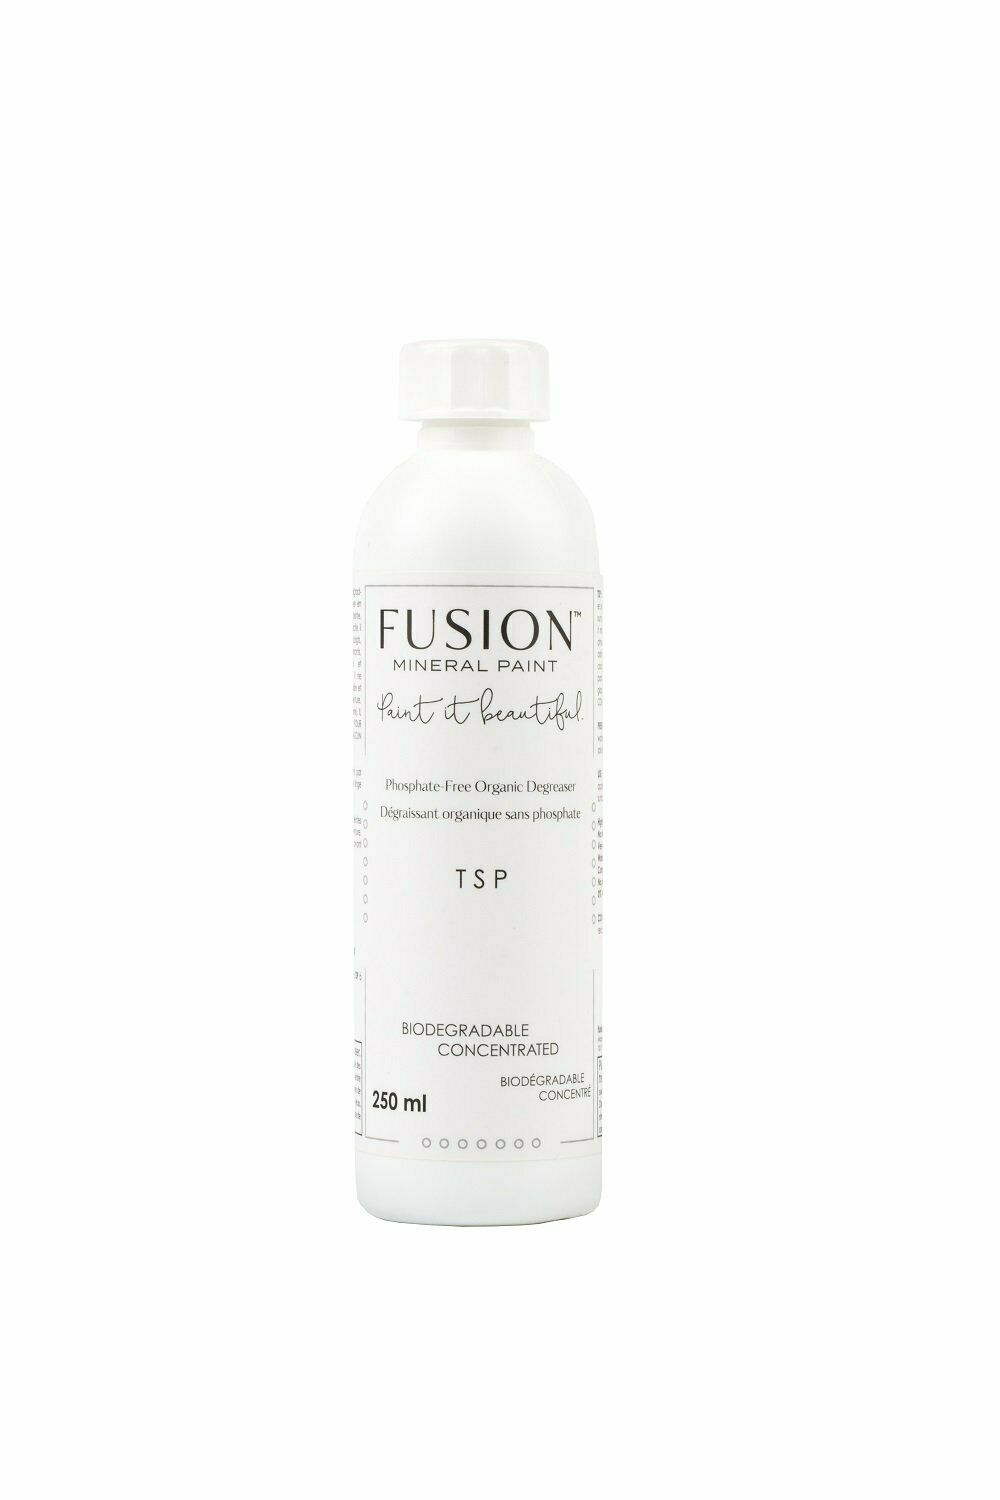 Fusion Mineral Paint TSP - 250mL - Phosphate-Free Organic De